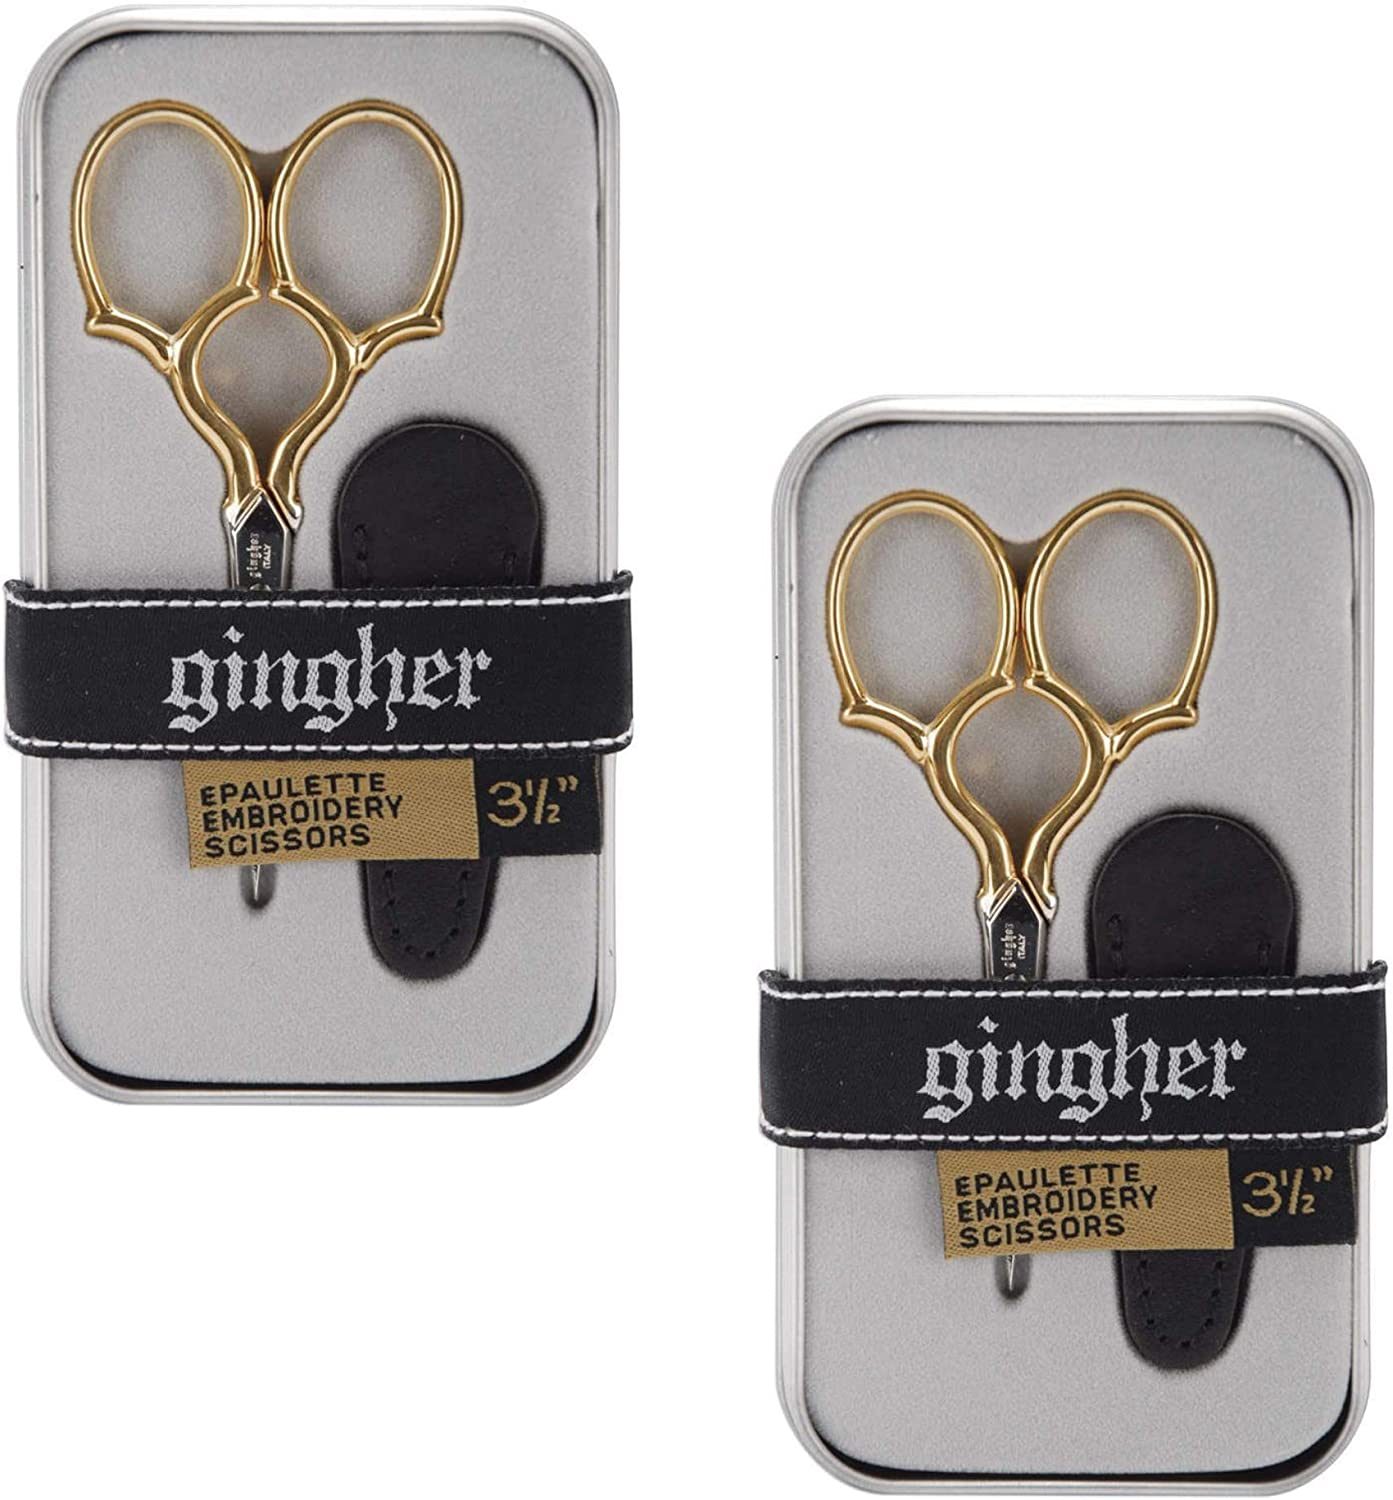 Gingher 1005279 Epaulette Embroidery Scissors 3.5-W/Leather Sheath, 2 Pack